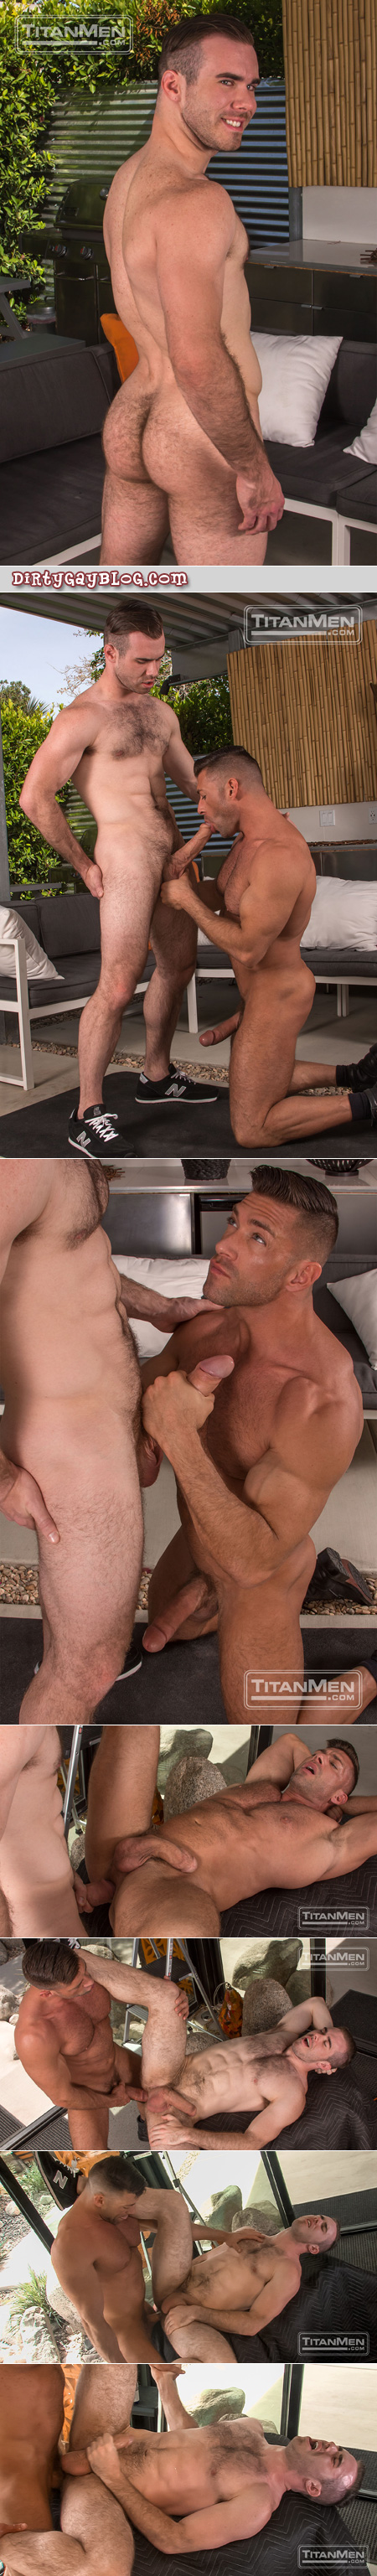 Hung, hairy young man having gay sex with his muscular, hung uncle.